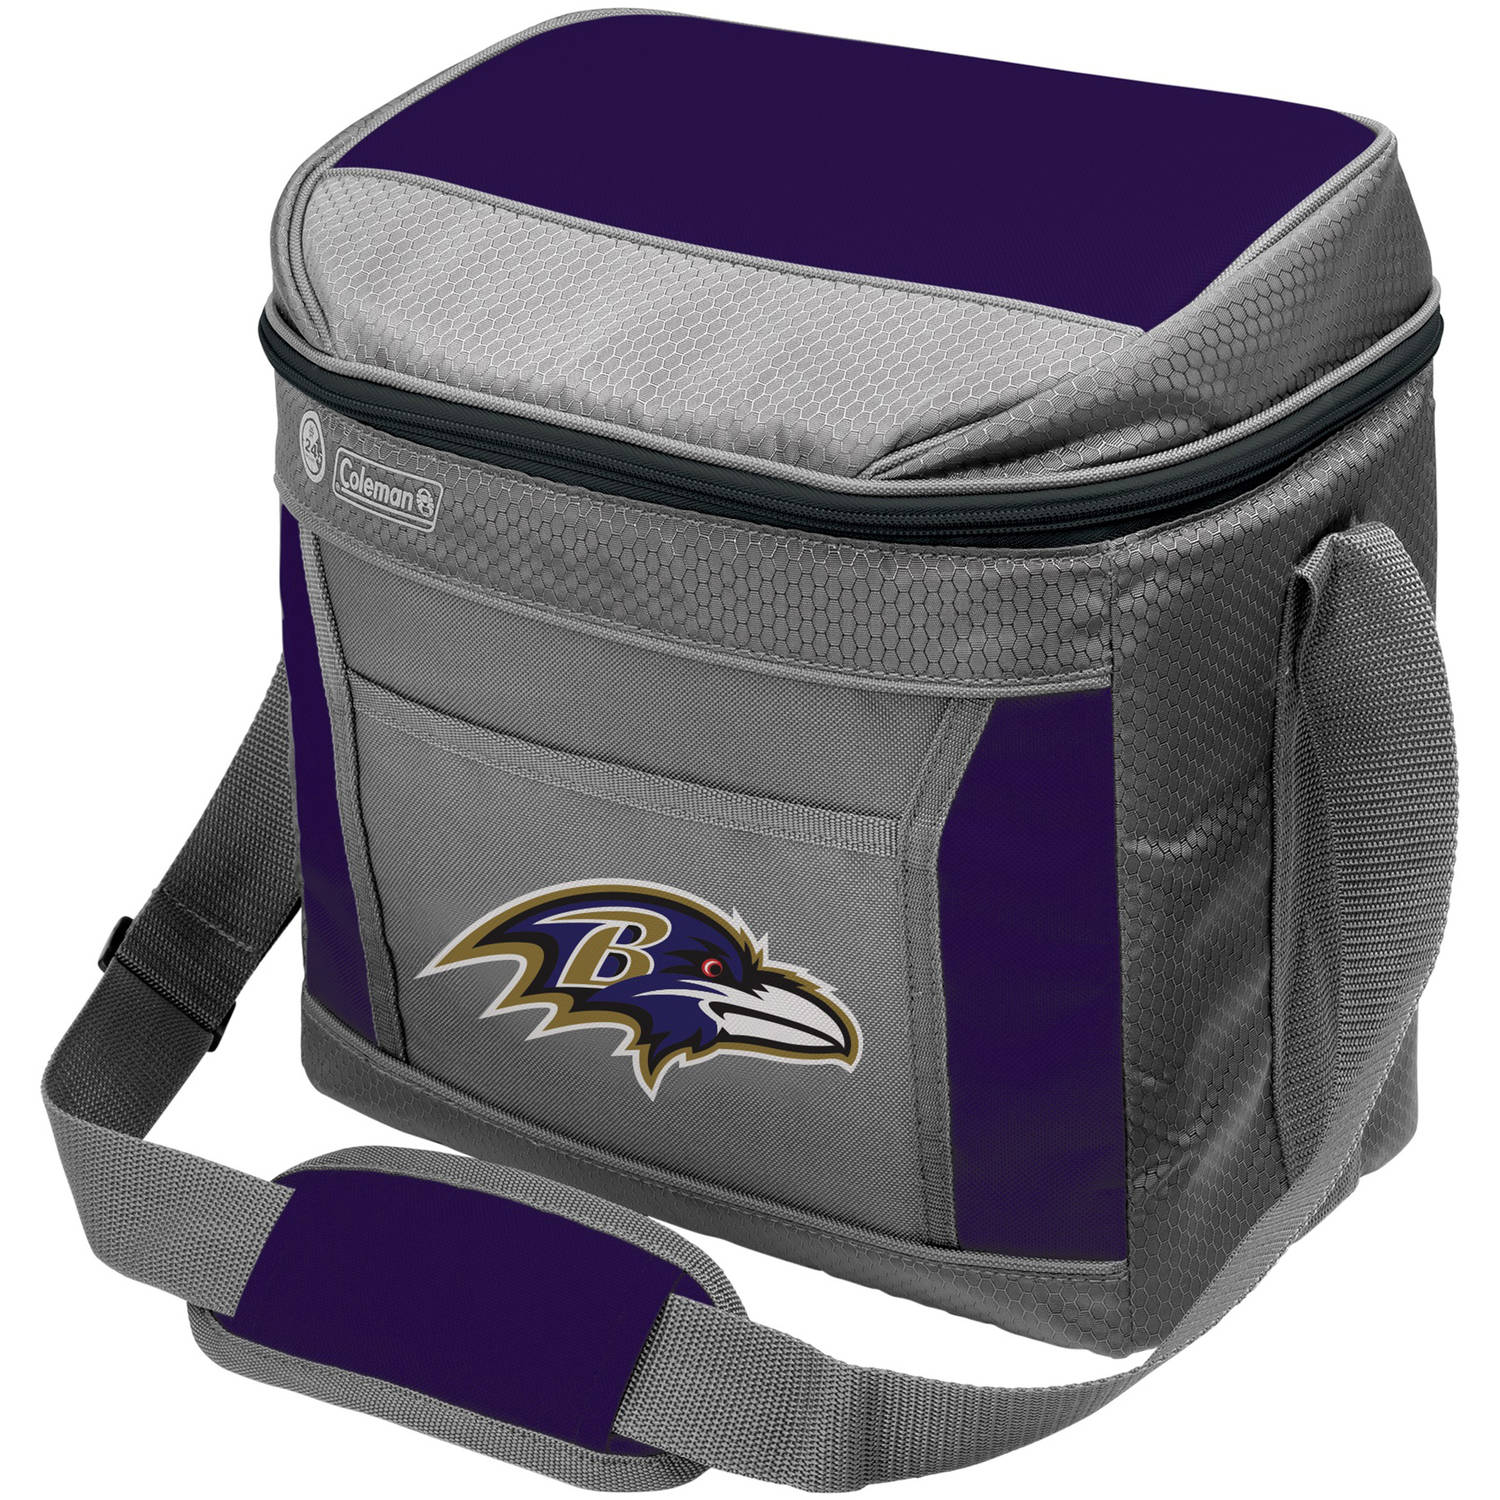 NFL 16-Can Soft-Sided Cooler, Baltimore